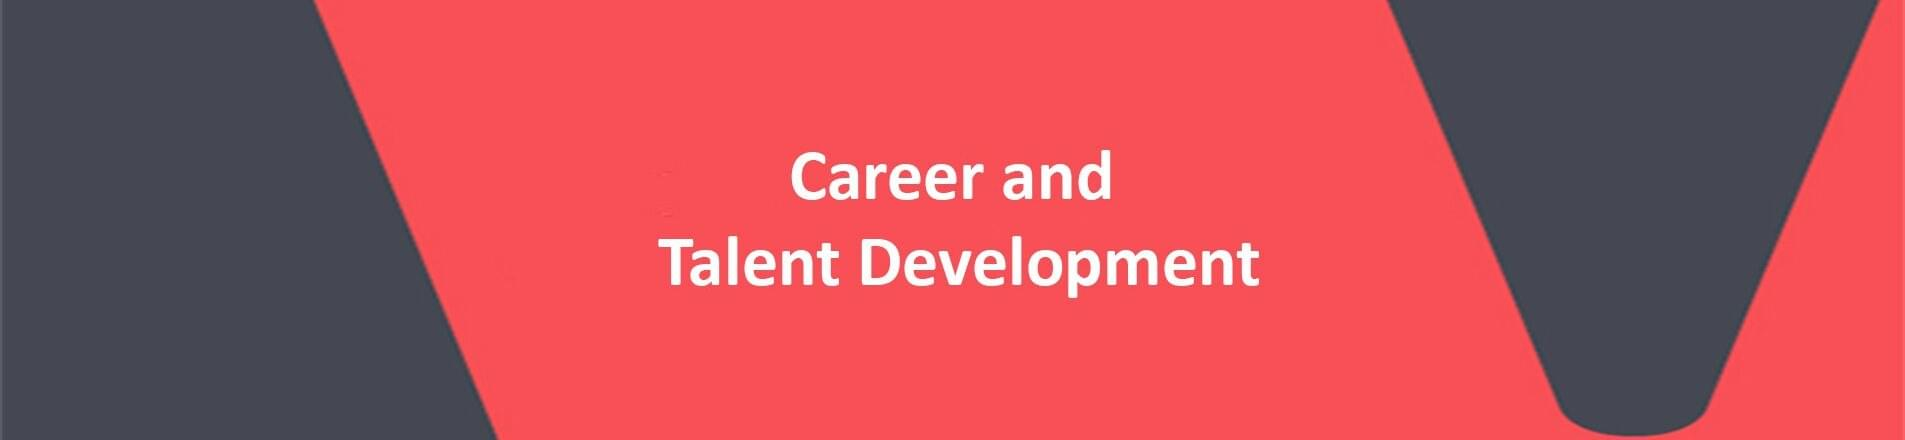 Red background with white lettering spelling - Career and Talent Development.